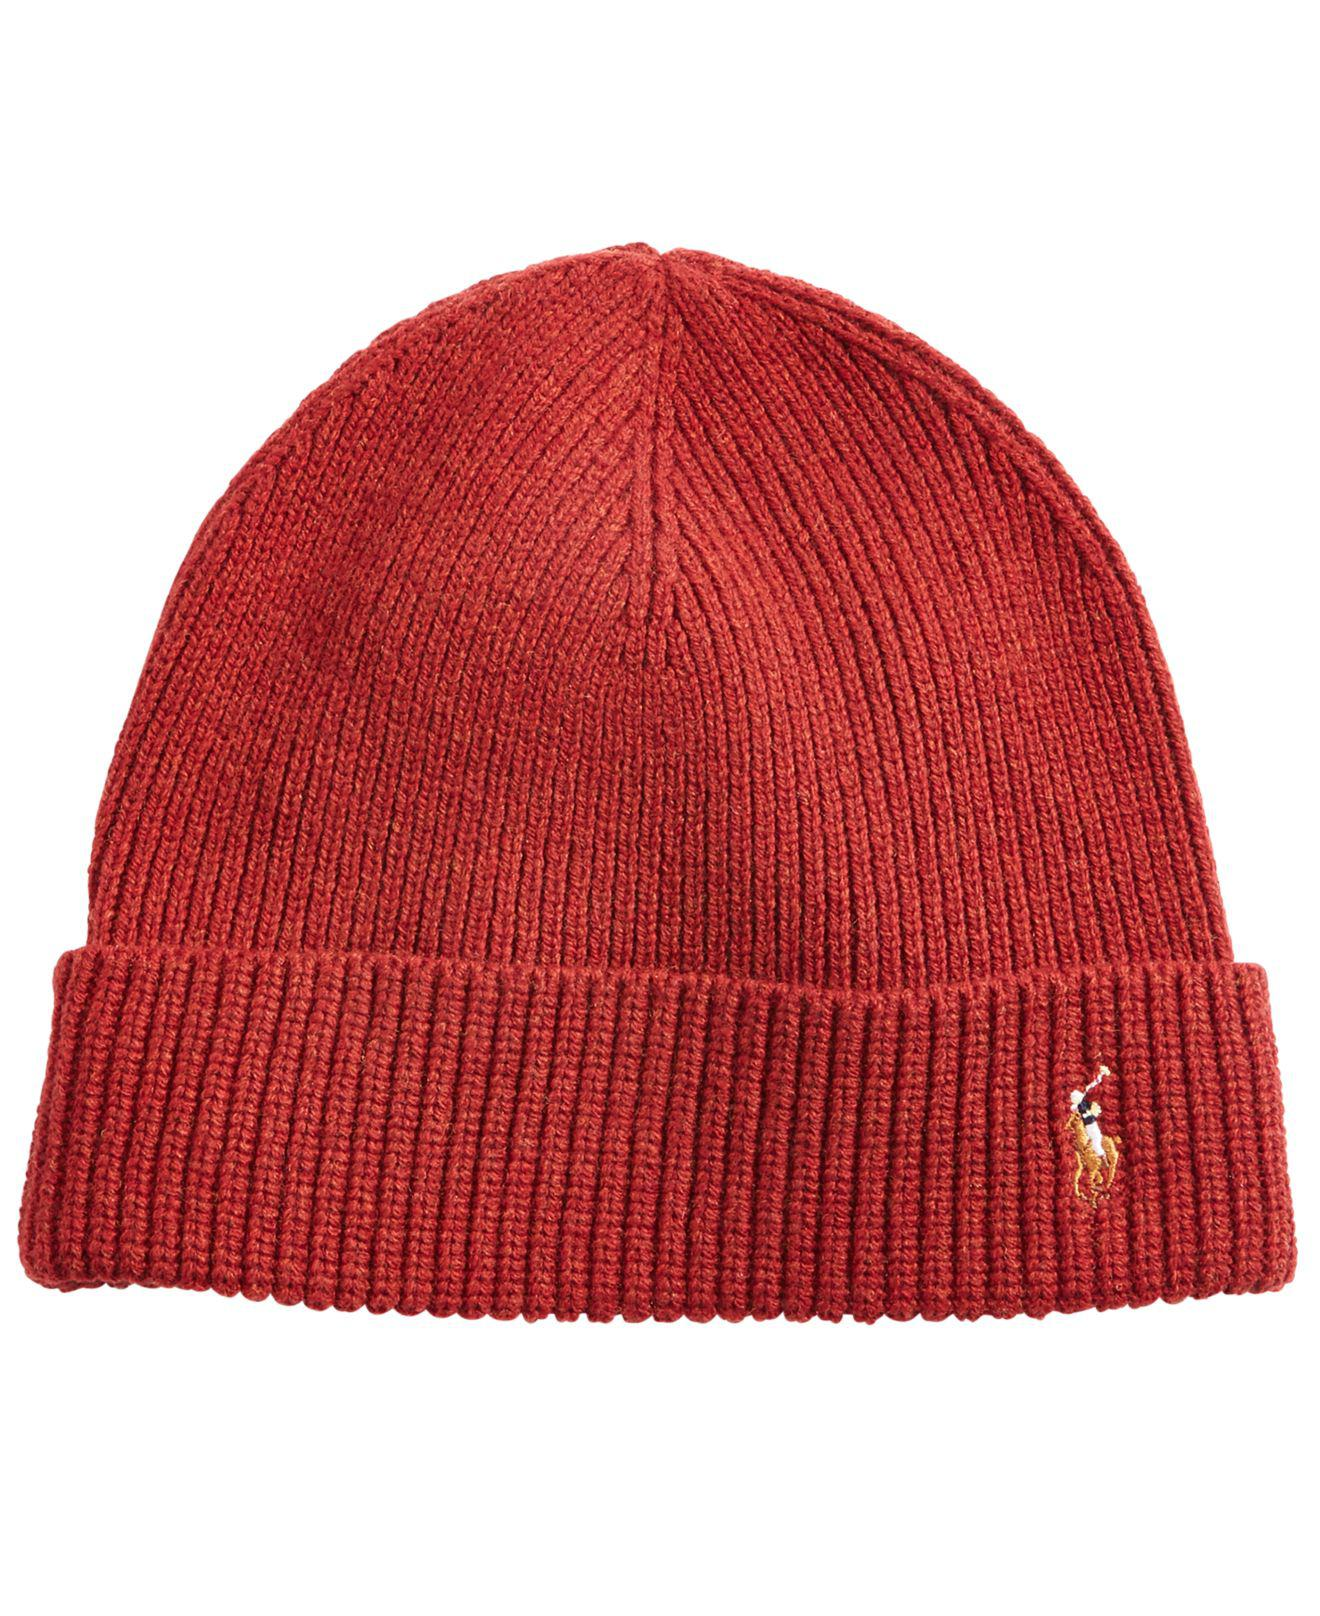 853f5bdb Polo Ralph Lauren Signature Merino Cuffed Beanie in Red for Men - Lyst